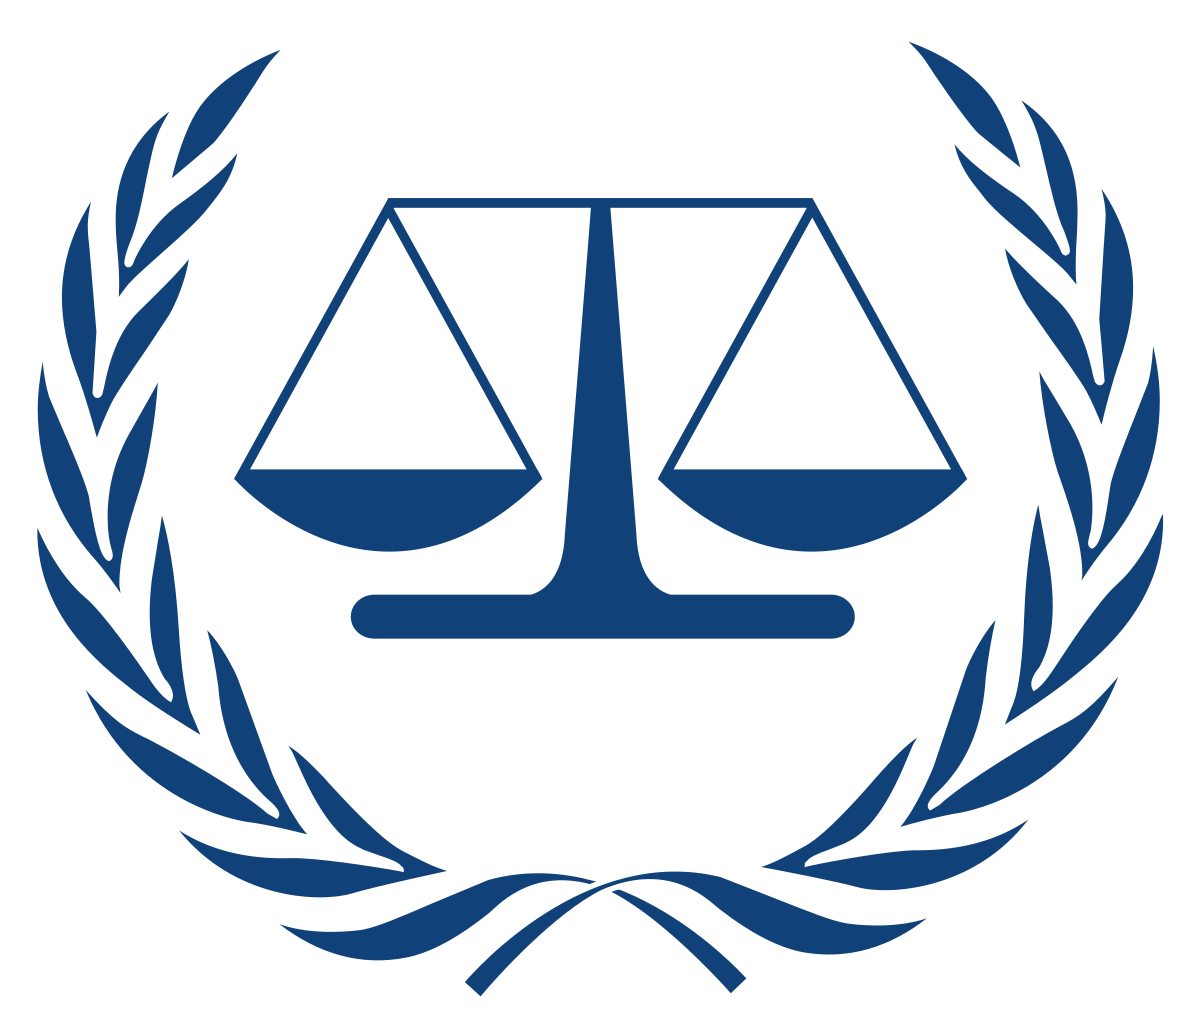 International court wikipedia . Judge clipart criminal trial